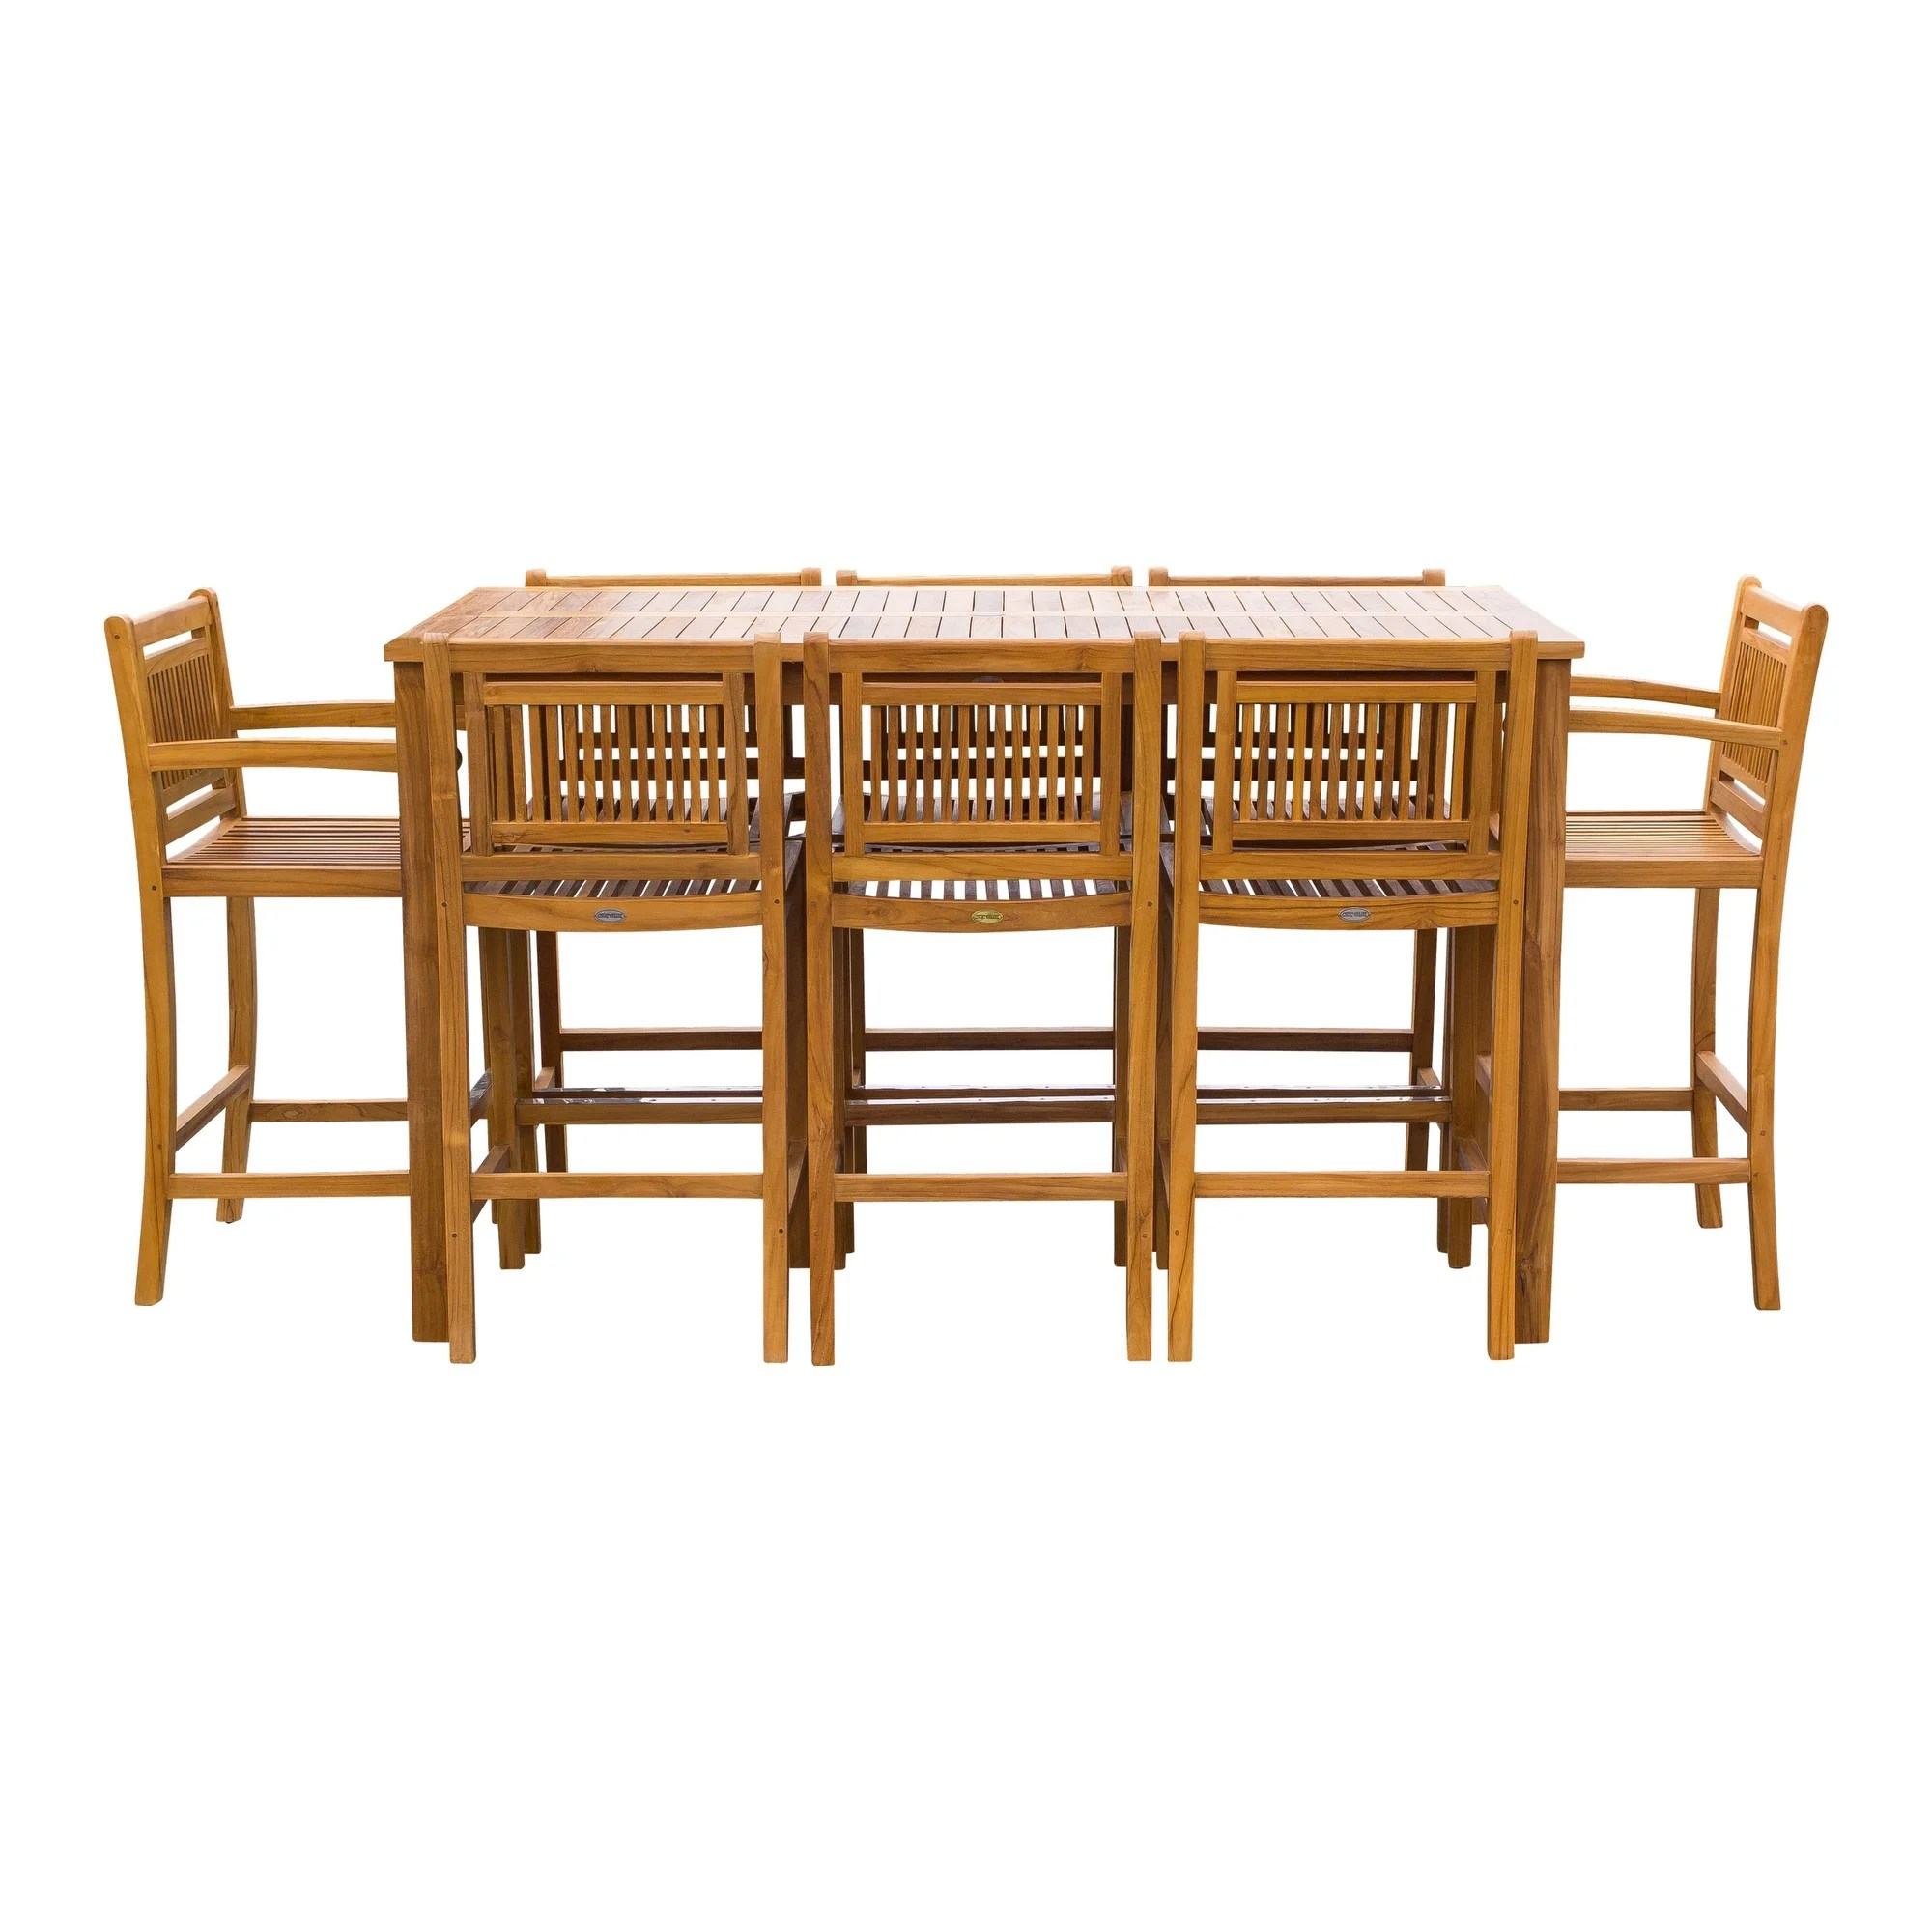 Chic Teak 9 Piece Teak Wood Maldives Patio Bistro Bar Set 71